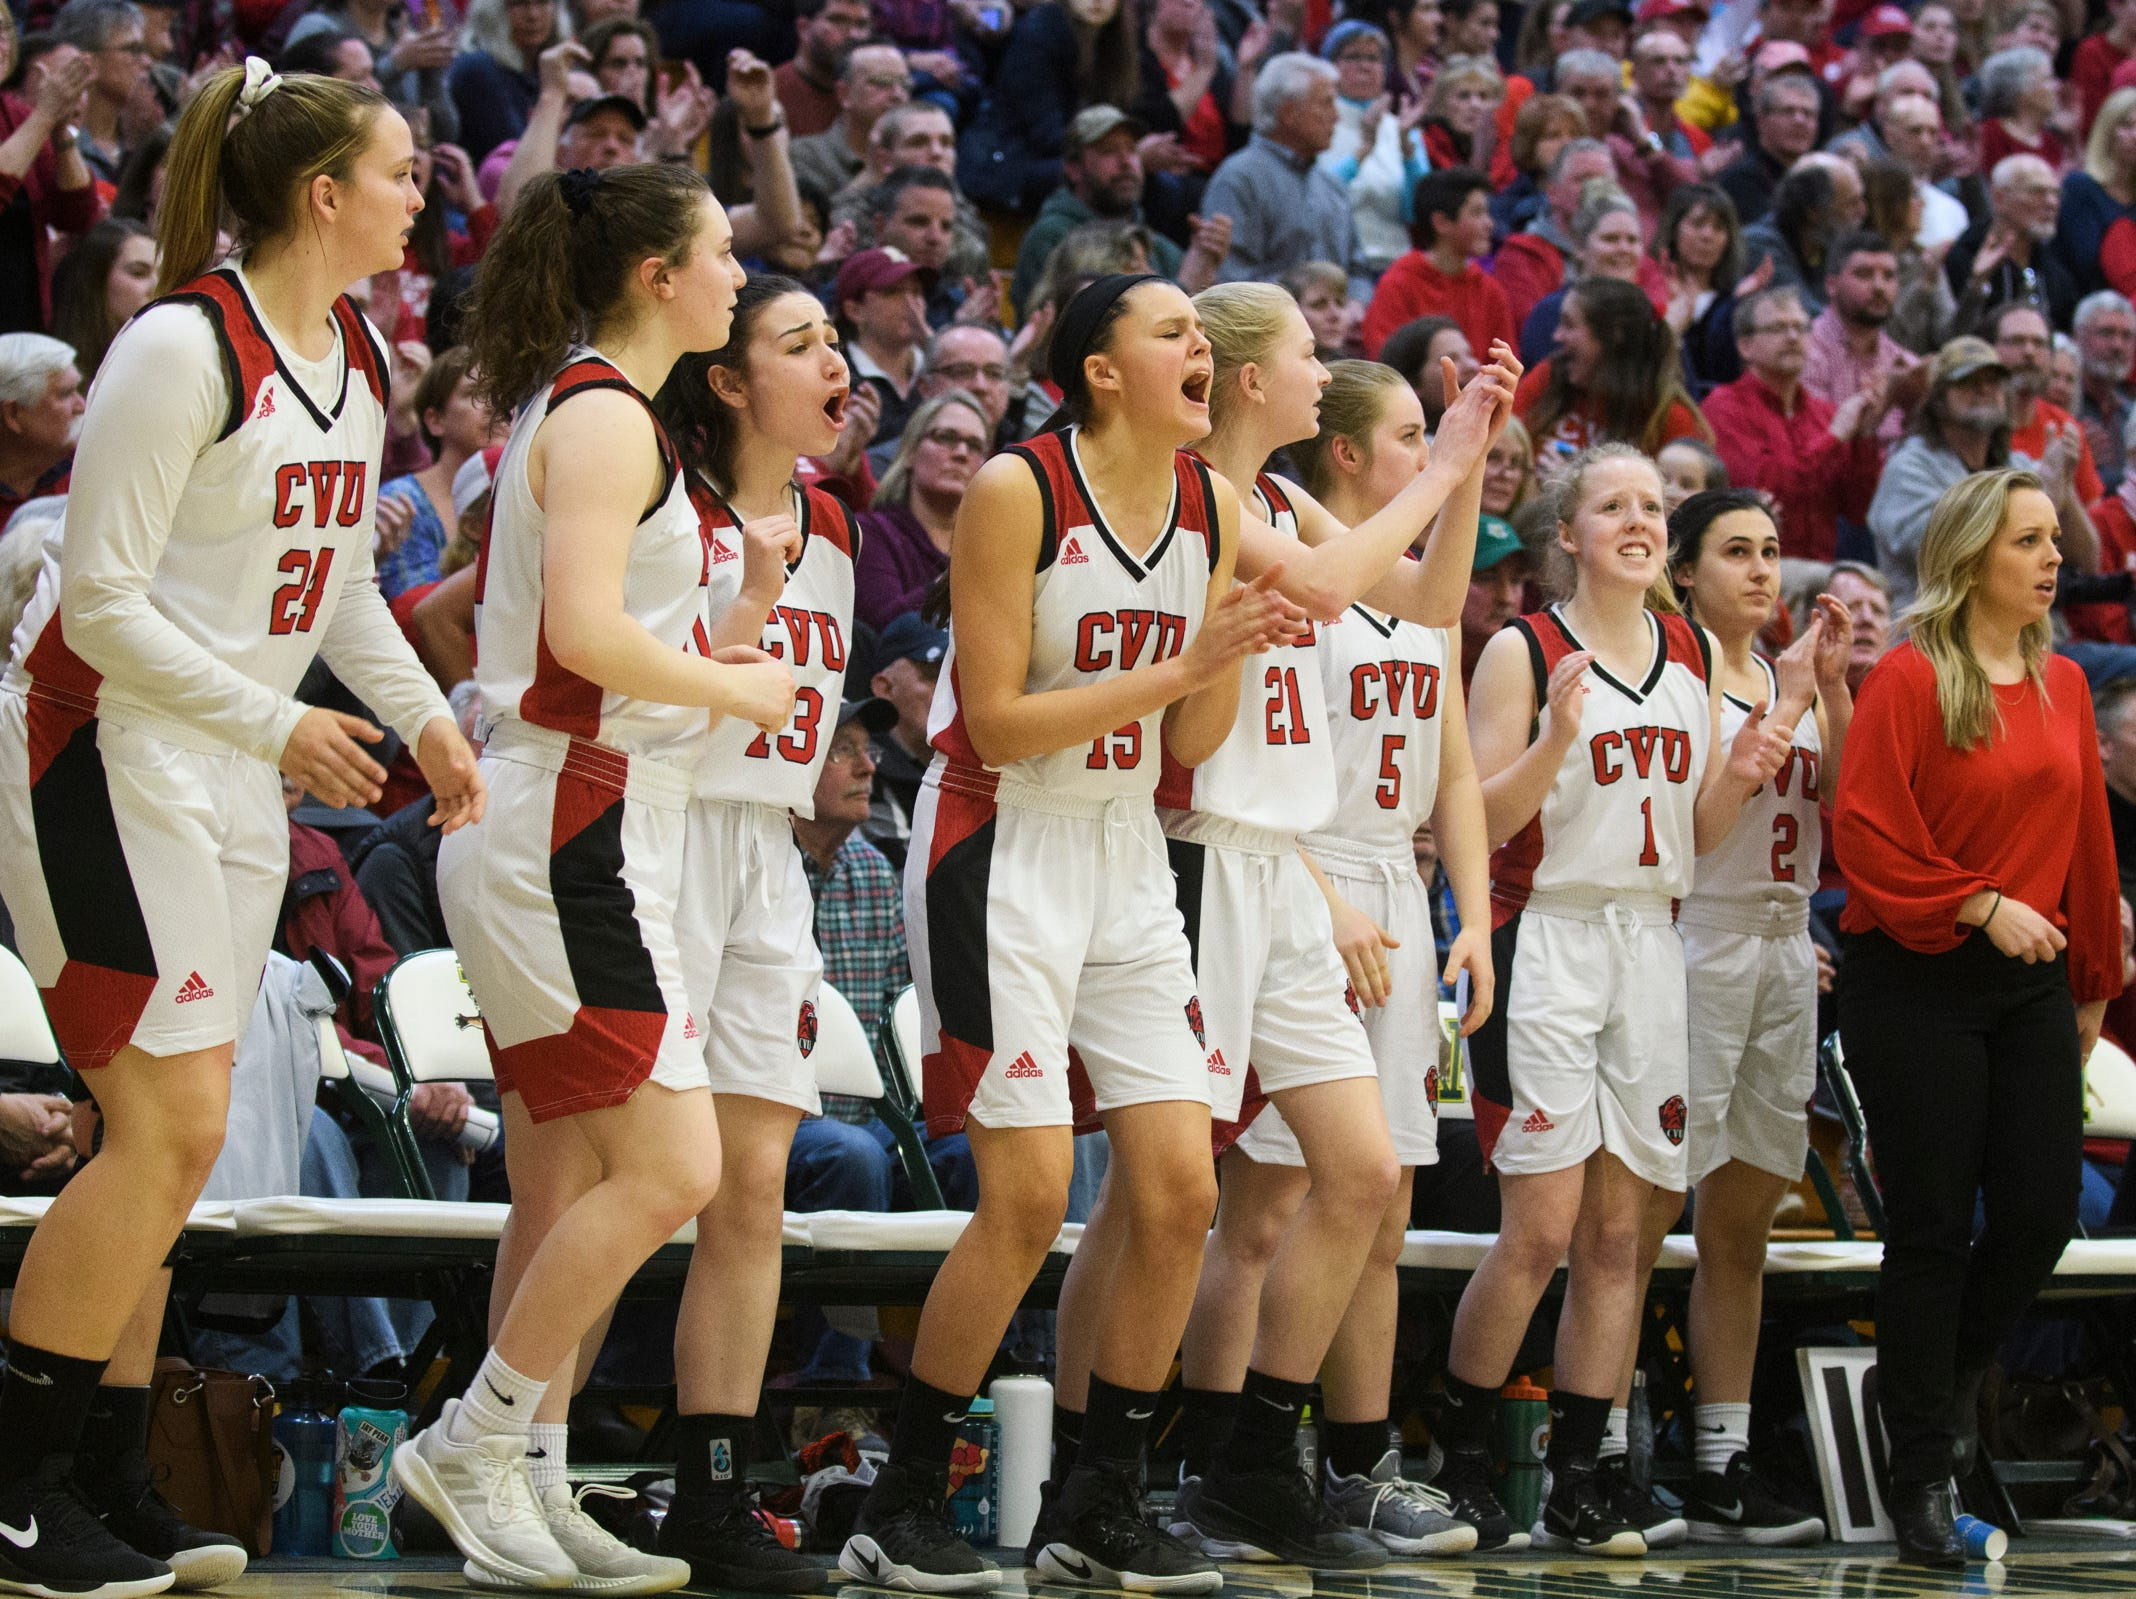 The CVU bench cheers for the team during the division I girls basketball championship basketball game between the St. Johnsbury Hilltoppers and the Champlain Valley Union Redhawks at Patrick Gym on Sunday afternoon March 10, 2019 in Burlington, Vermont.